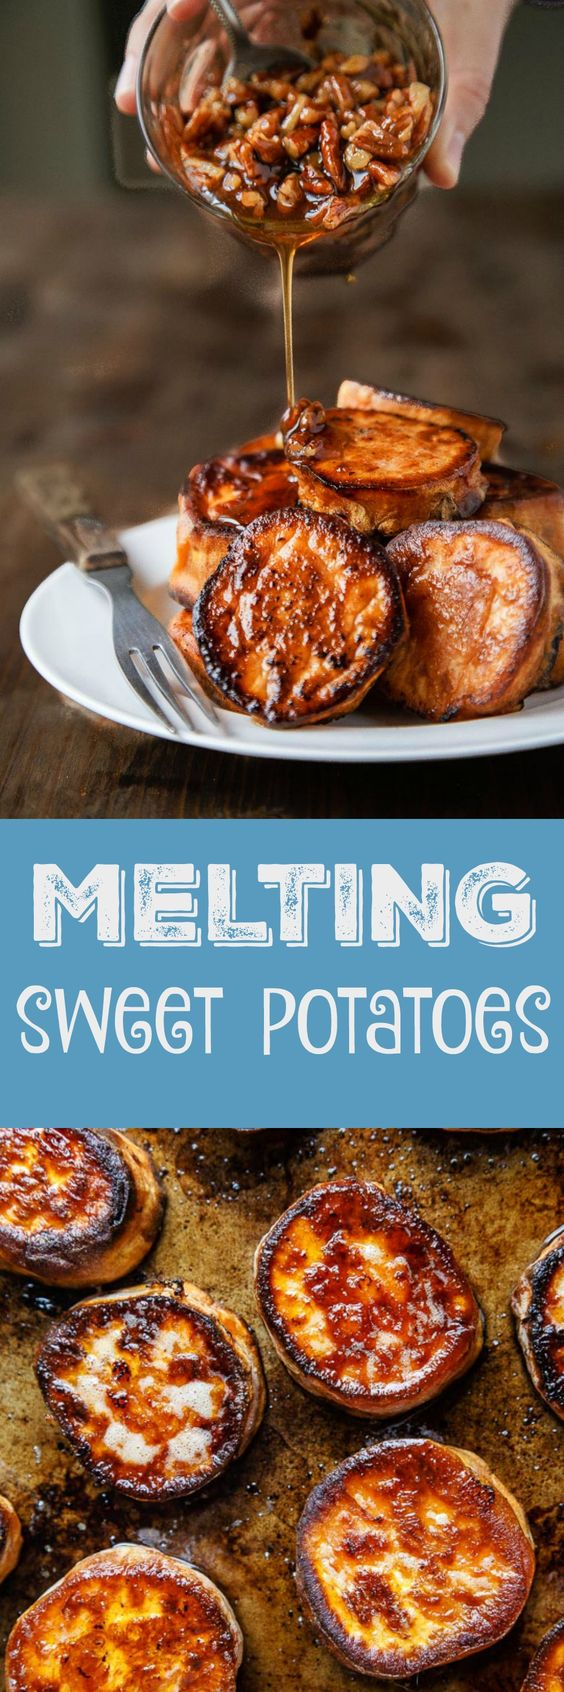 Melting Sweet Potatoes with Maple Pecan Sauce. Perfect roasted sweet potatoes with a sweet maple sticky sauce. Like regular melting potatoes, but made with sweet potatoes!